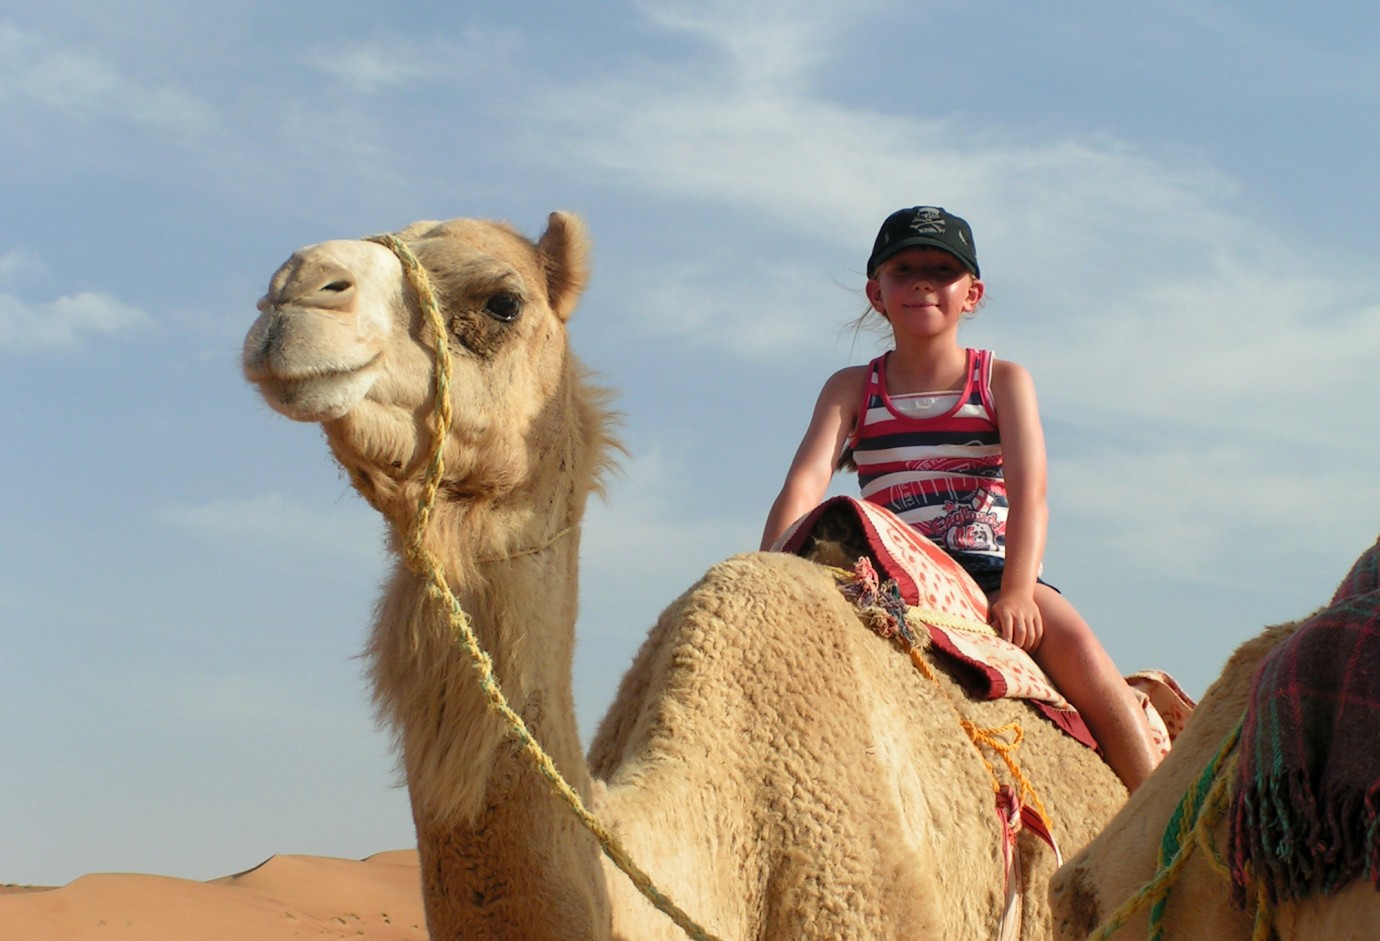 db74a3250717 Family Adventure Holiday in Oman - Dolphins and Deserts - KE ...